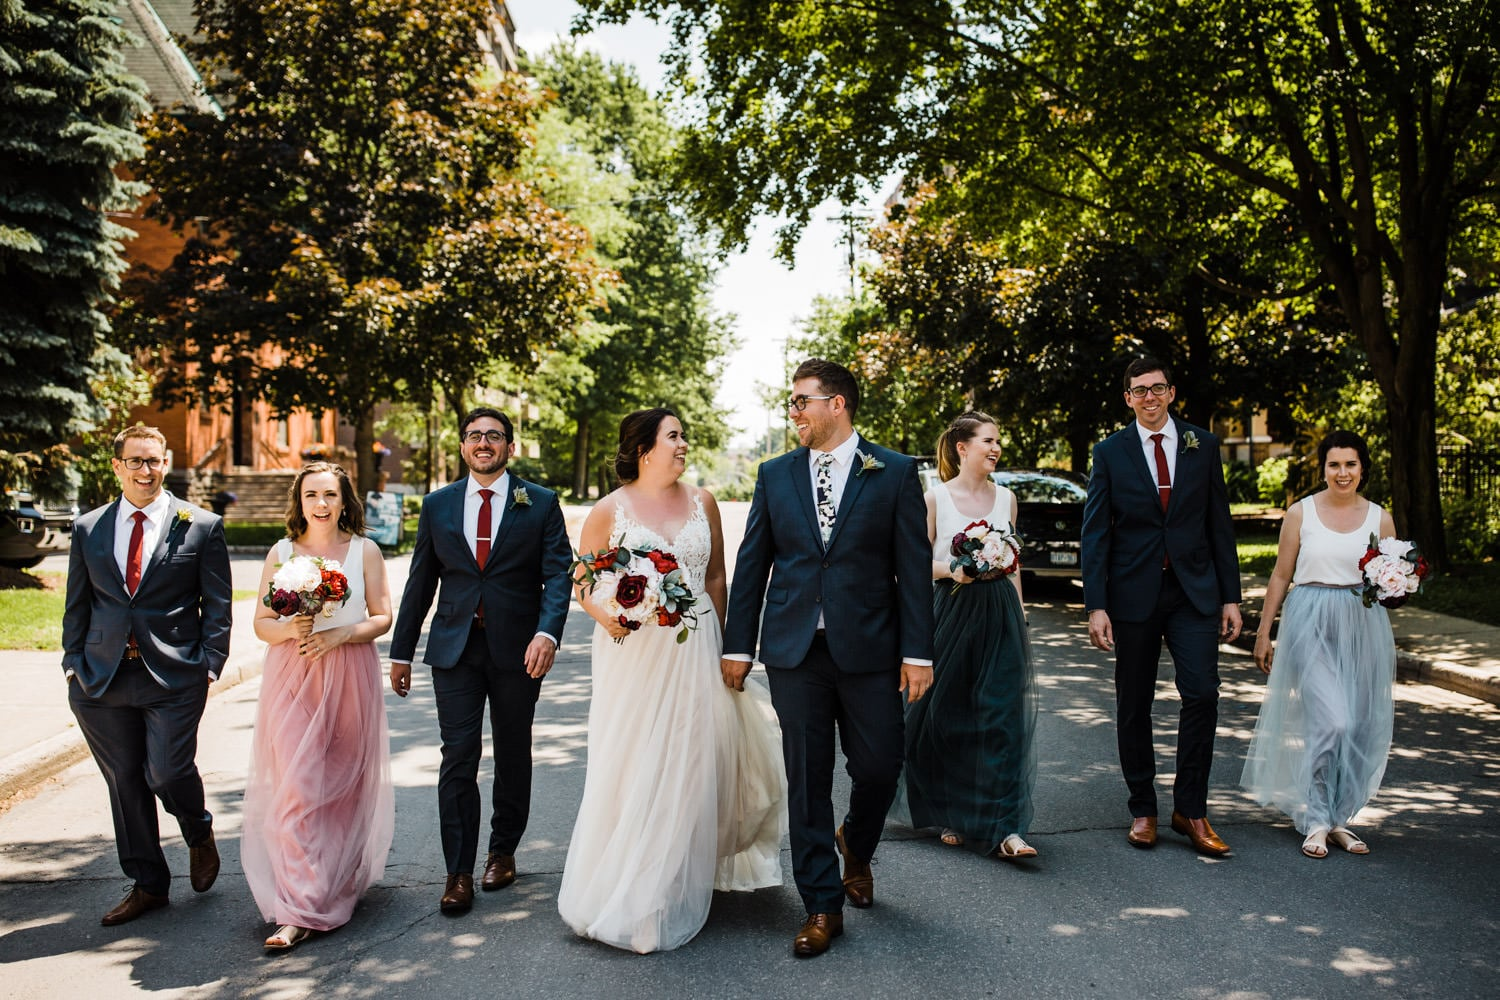 wedding party walks down street - carley teresa photography